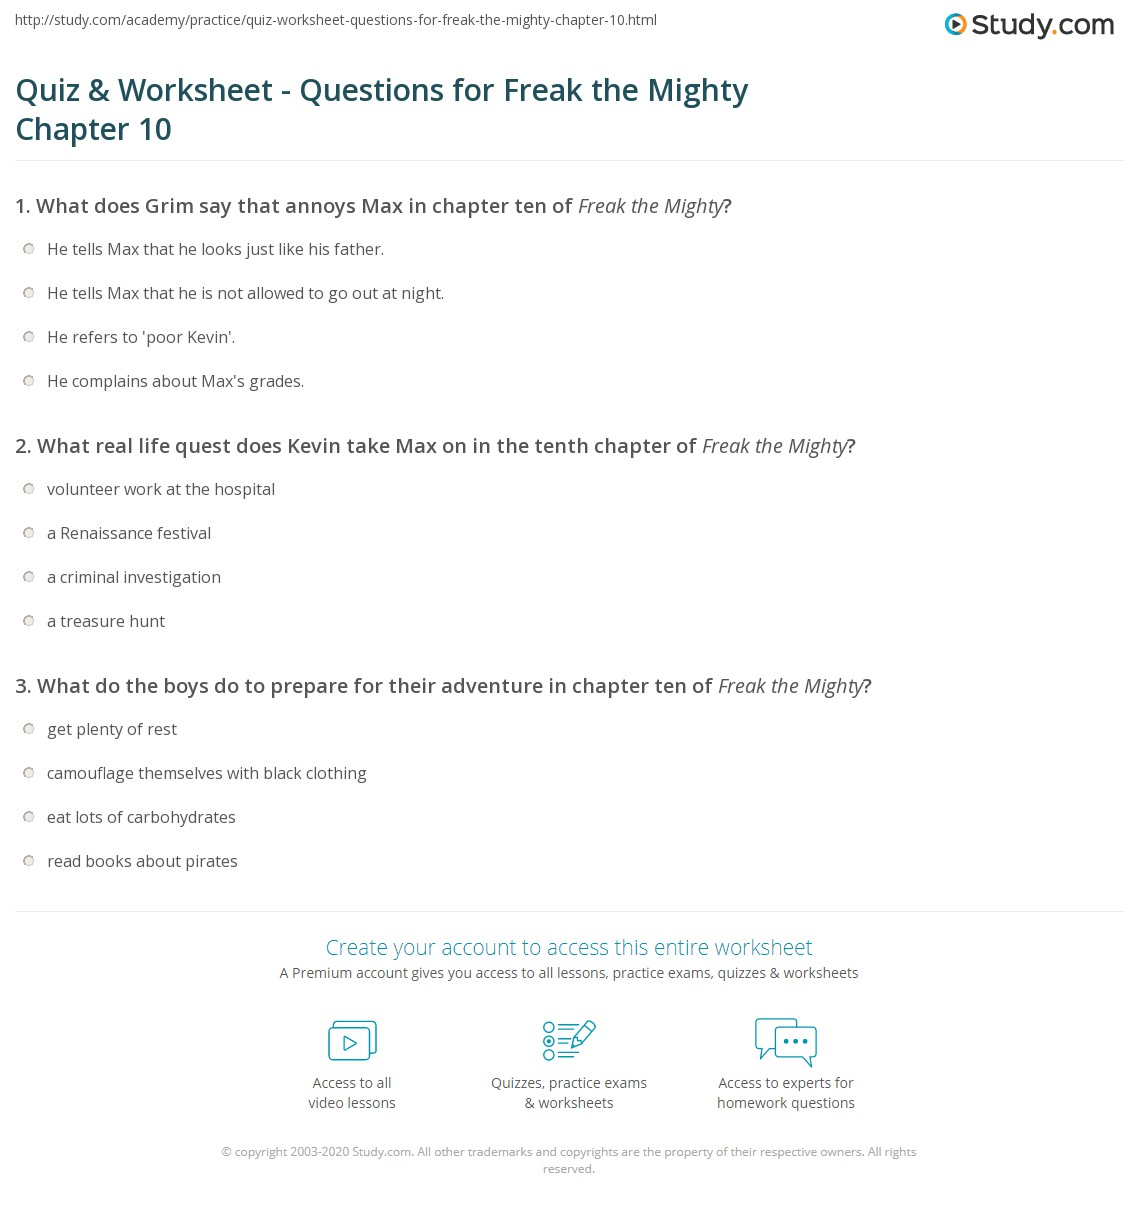 ... & Worksheet - Questions for Freak the Mighty Chapter 10 | Study.com